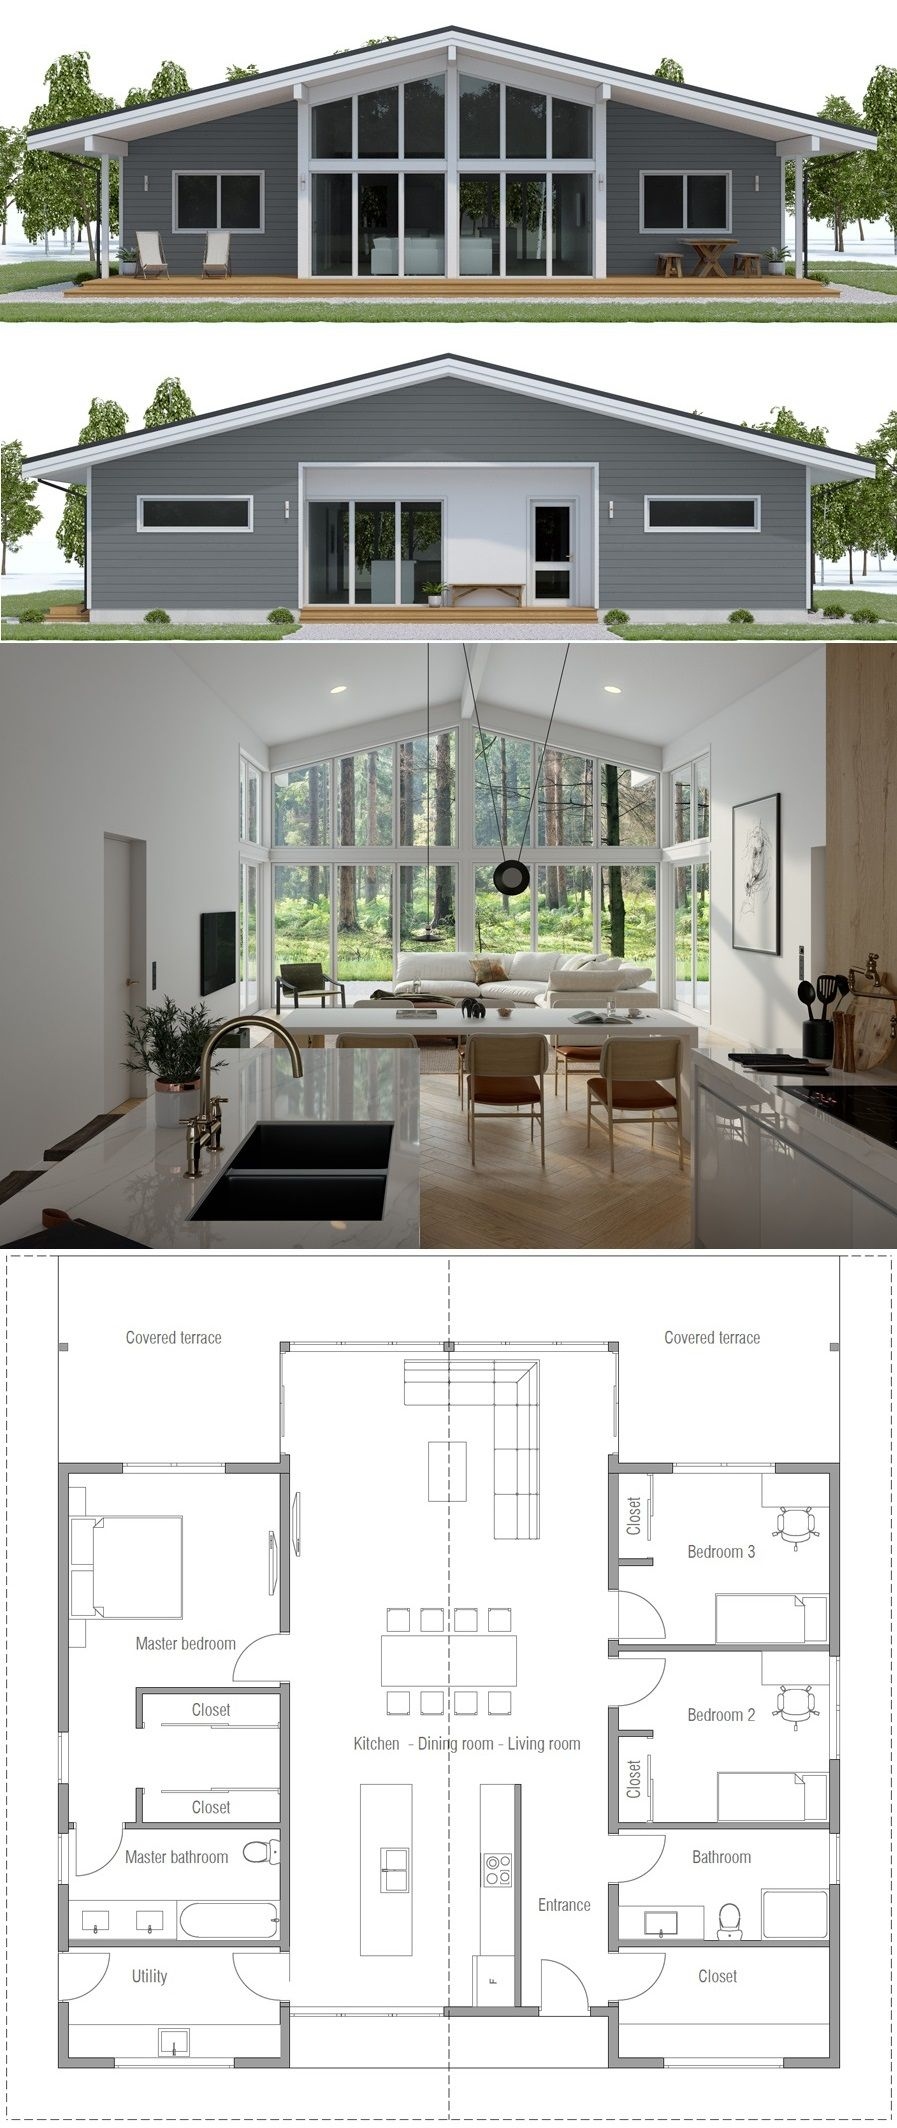 Single Story House Plam Homeplans Houseplans Architecture Newhomes Concepthome Adhouseplans Dream House Plans New House Plans House Plans